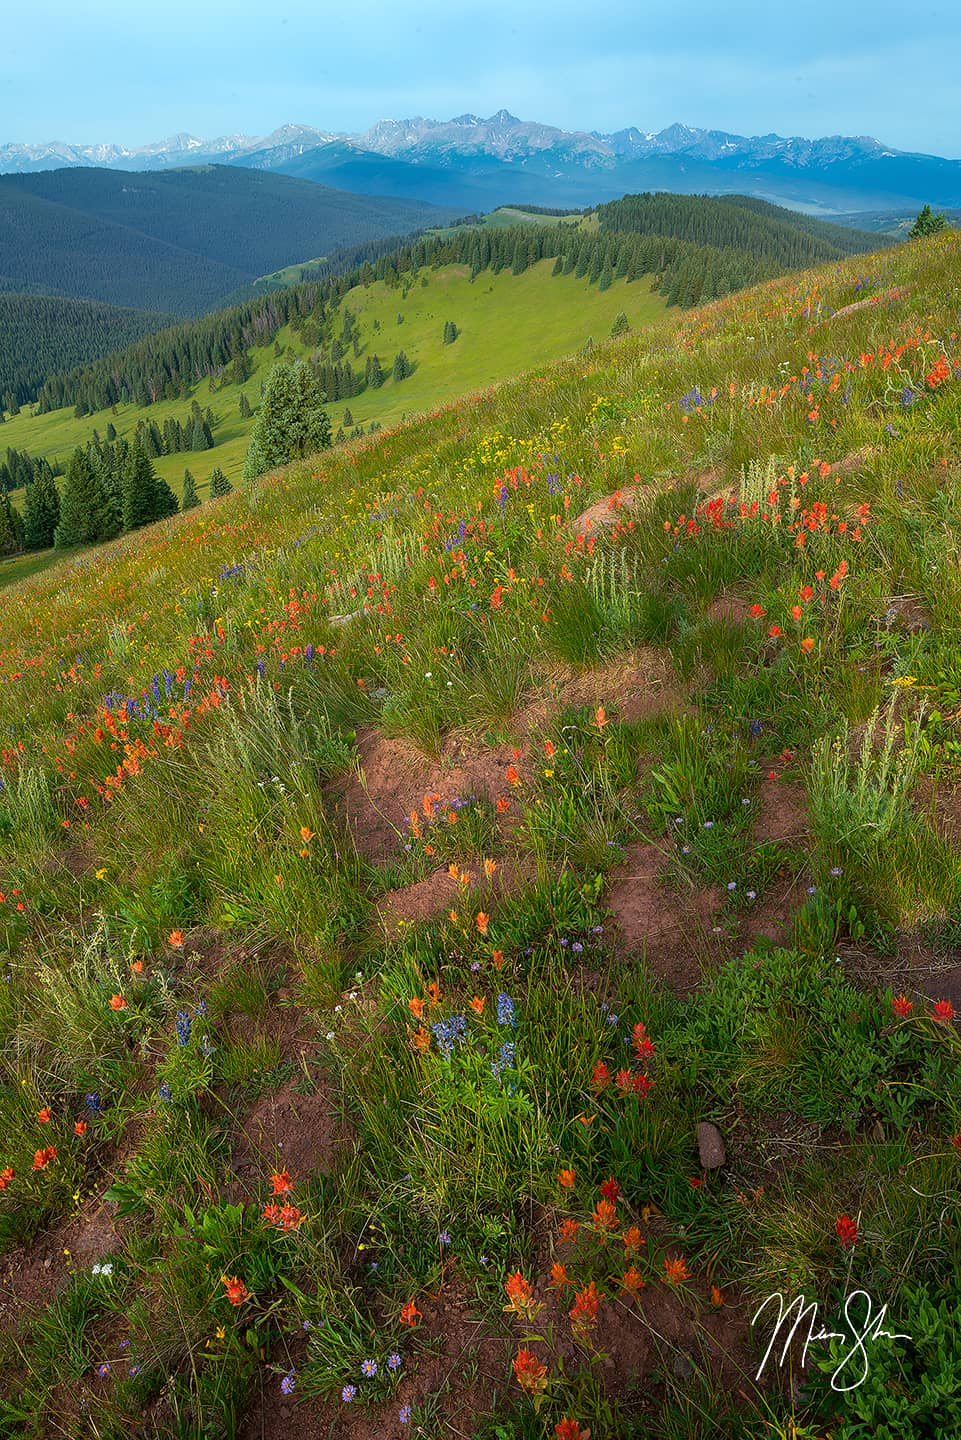 Open edition fine art print of Mount of the Holy Cross Wildflower View from Mickey Shannon Photography. Location: Shrine Ridge, Colorado